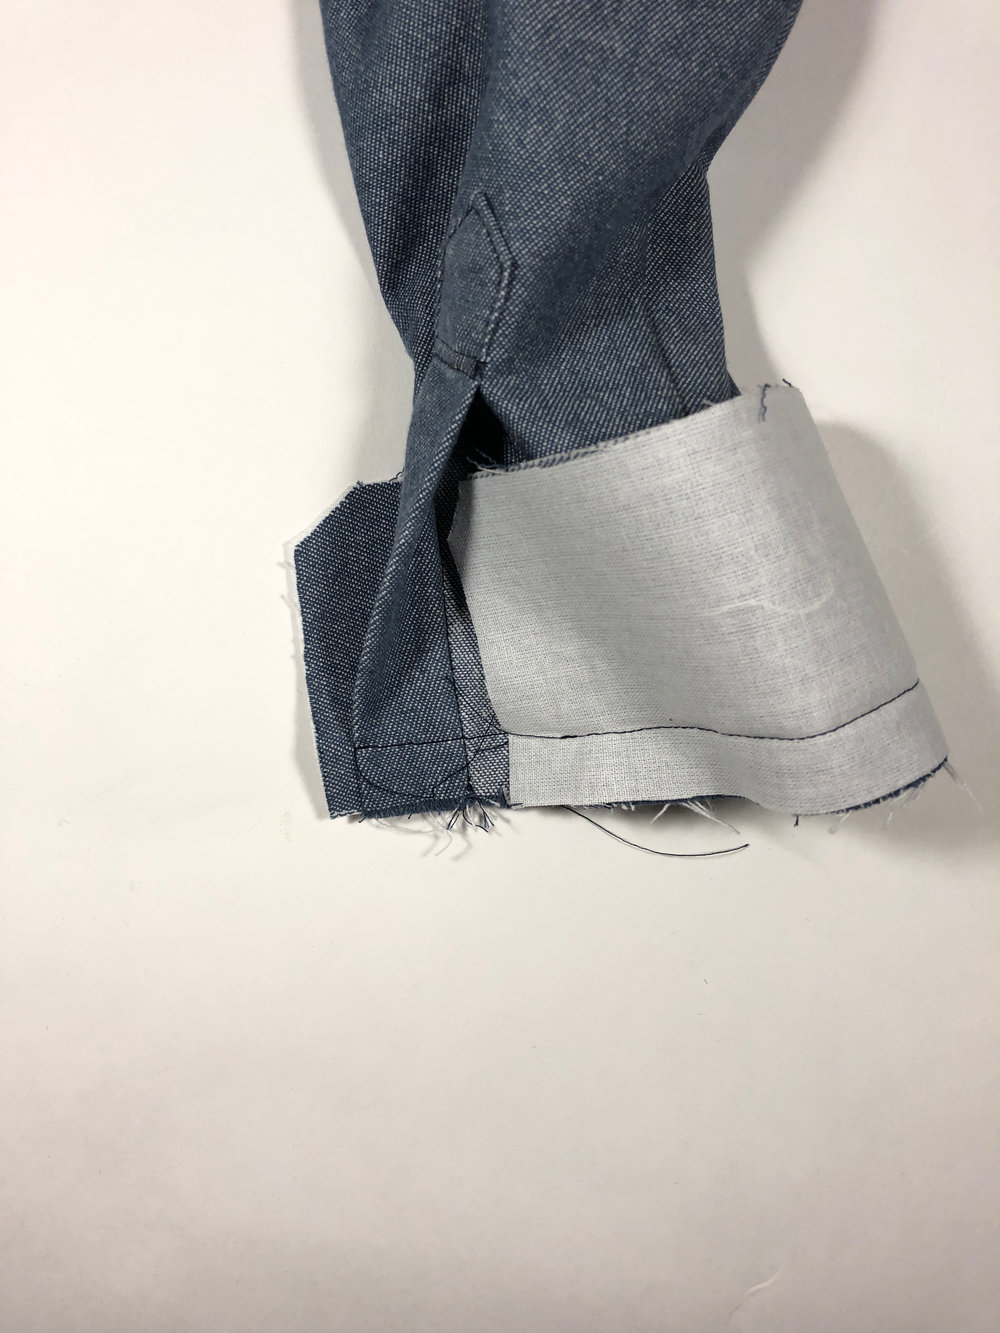 "65. With right sides together, stitch the interfaced cuff to the sleeve hem with a 5/8"" seam allowance. The cuff should extend past the placket openings by 1/4""."